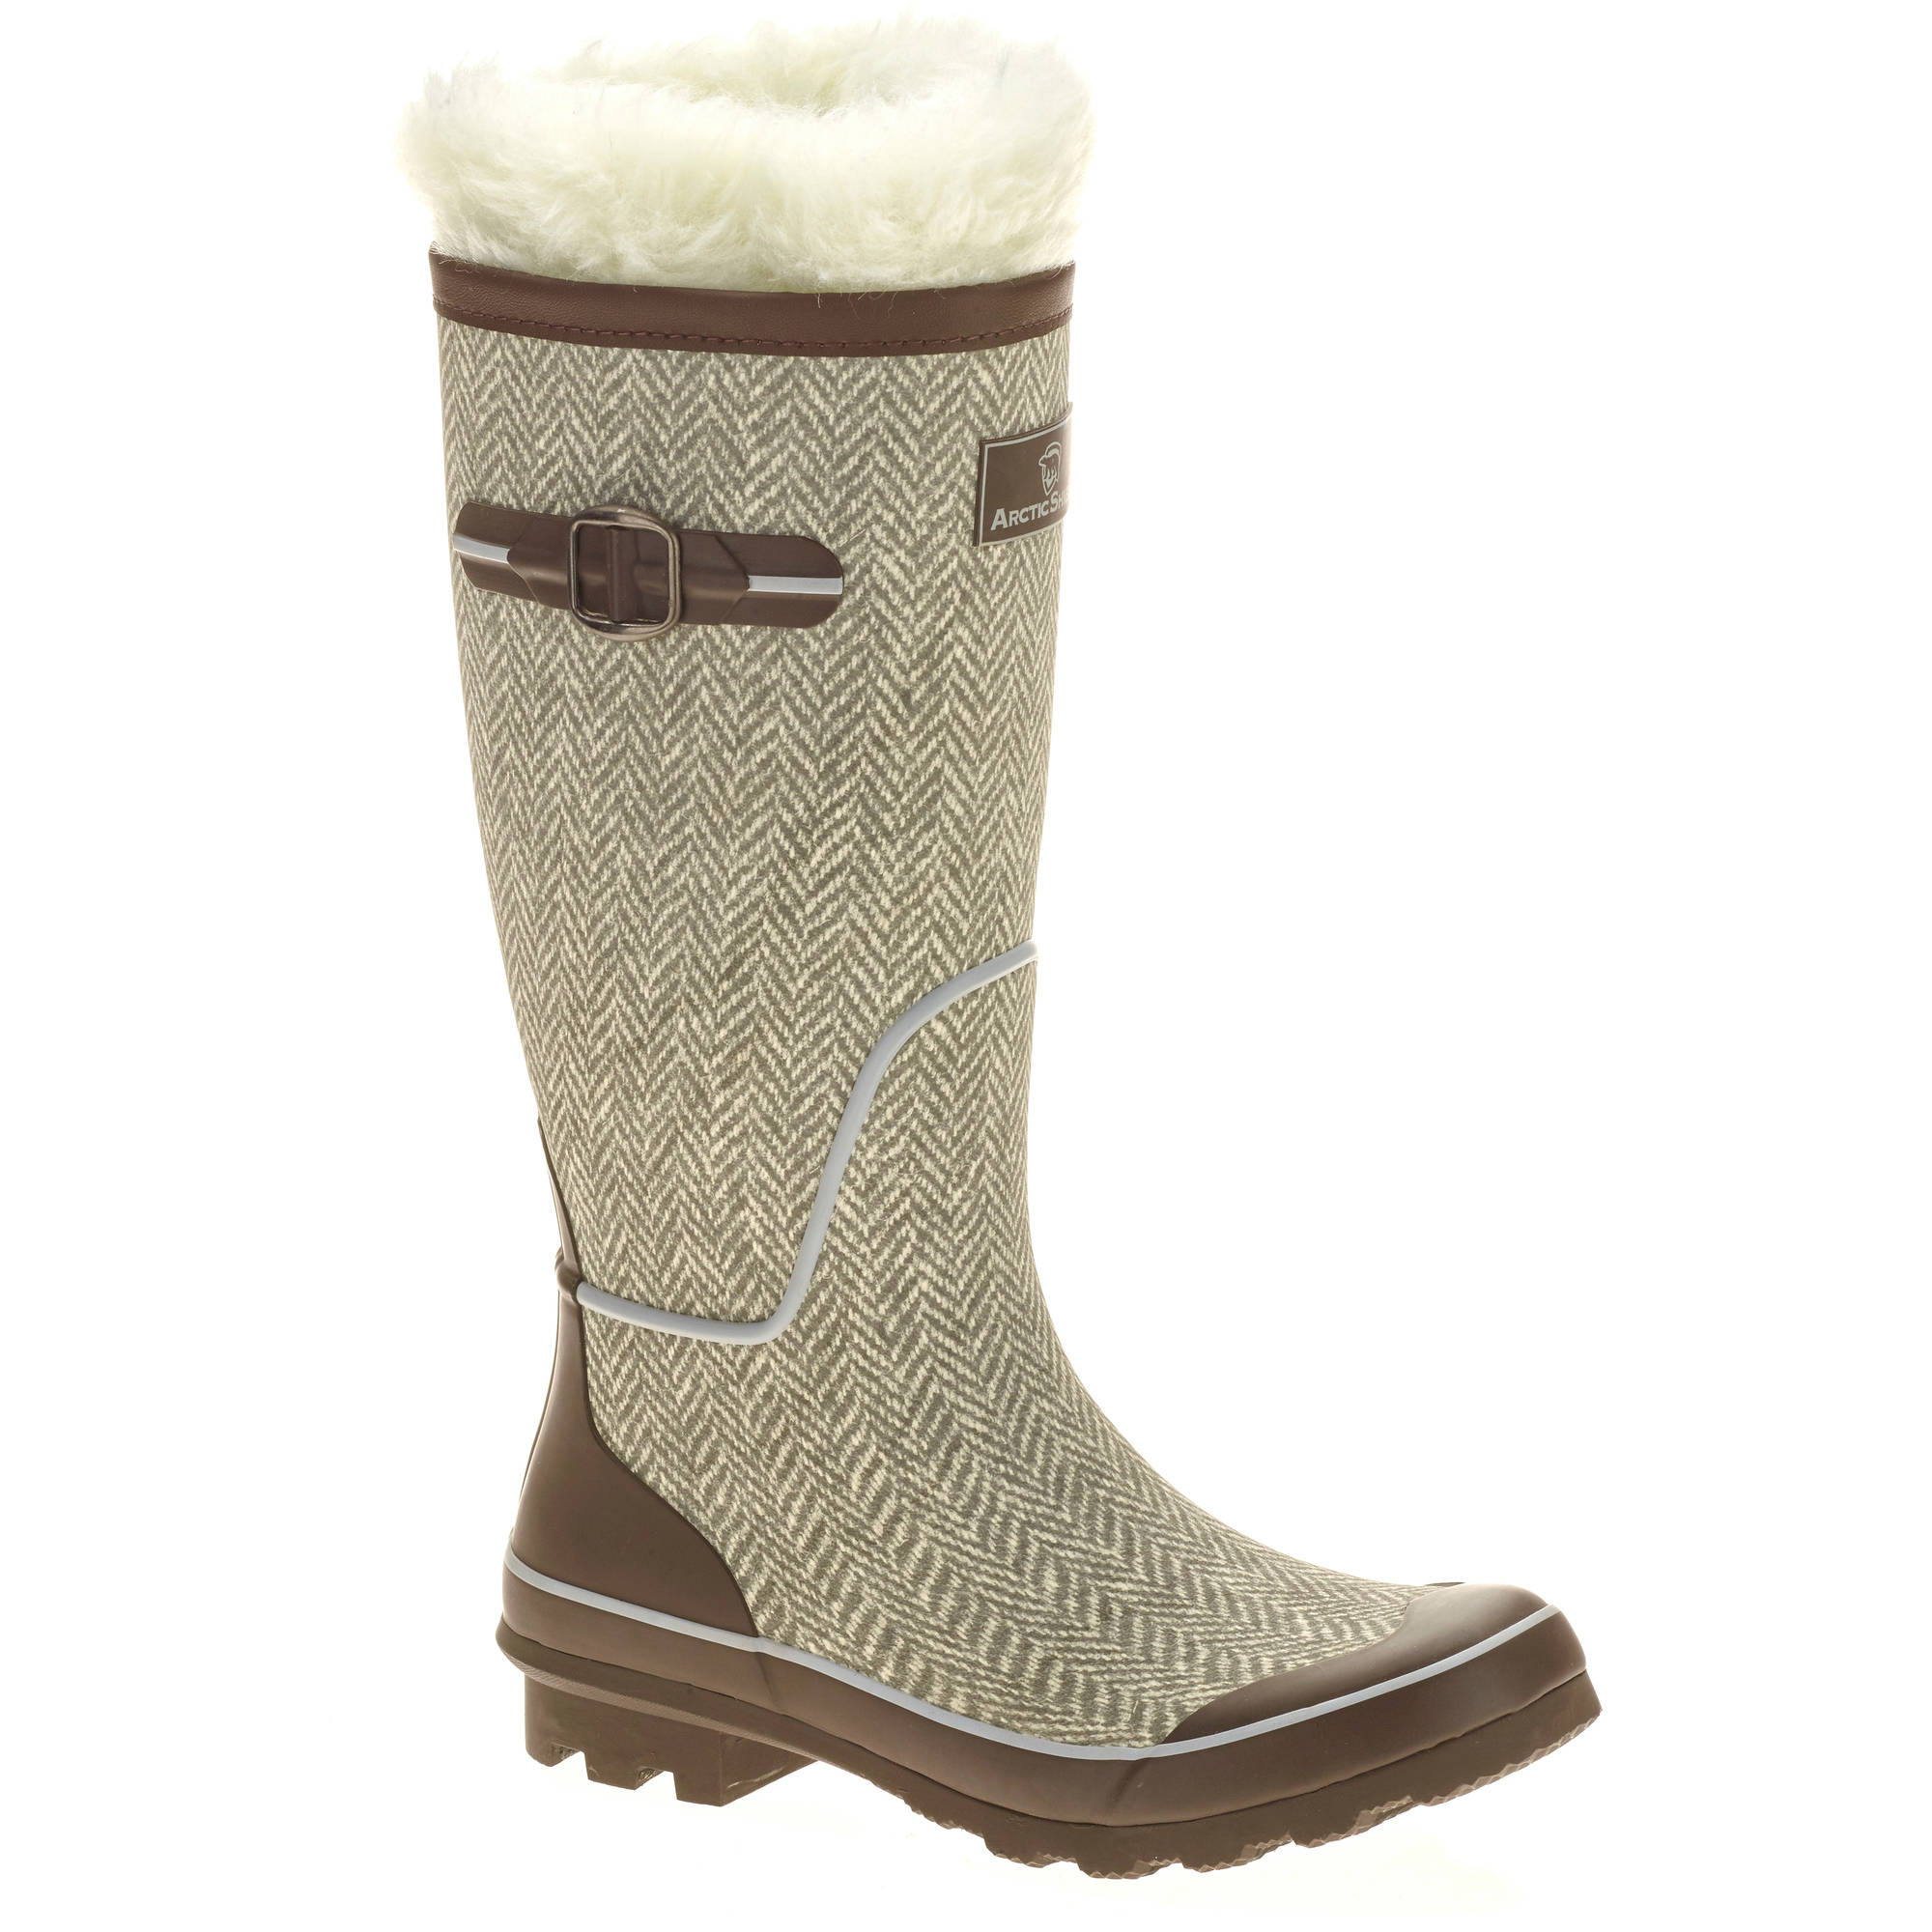 faded wmns arctic shield rubber winter boot